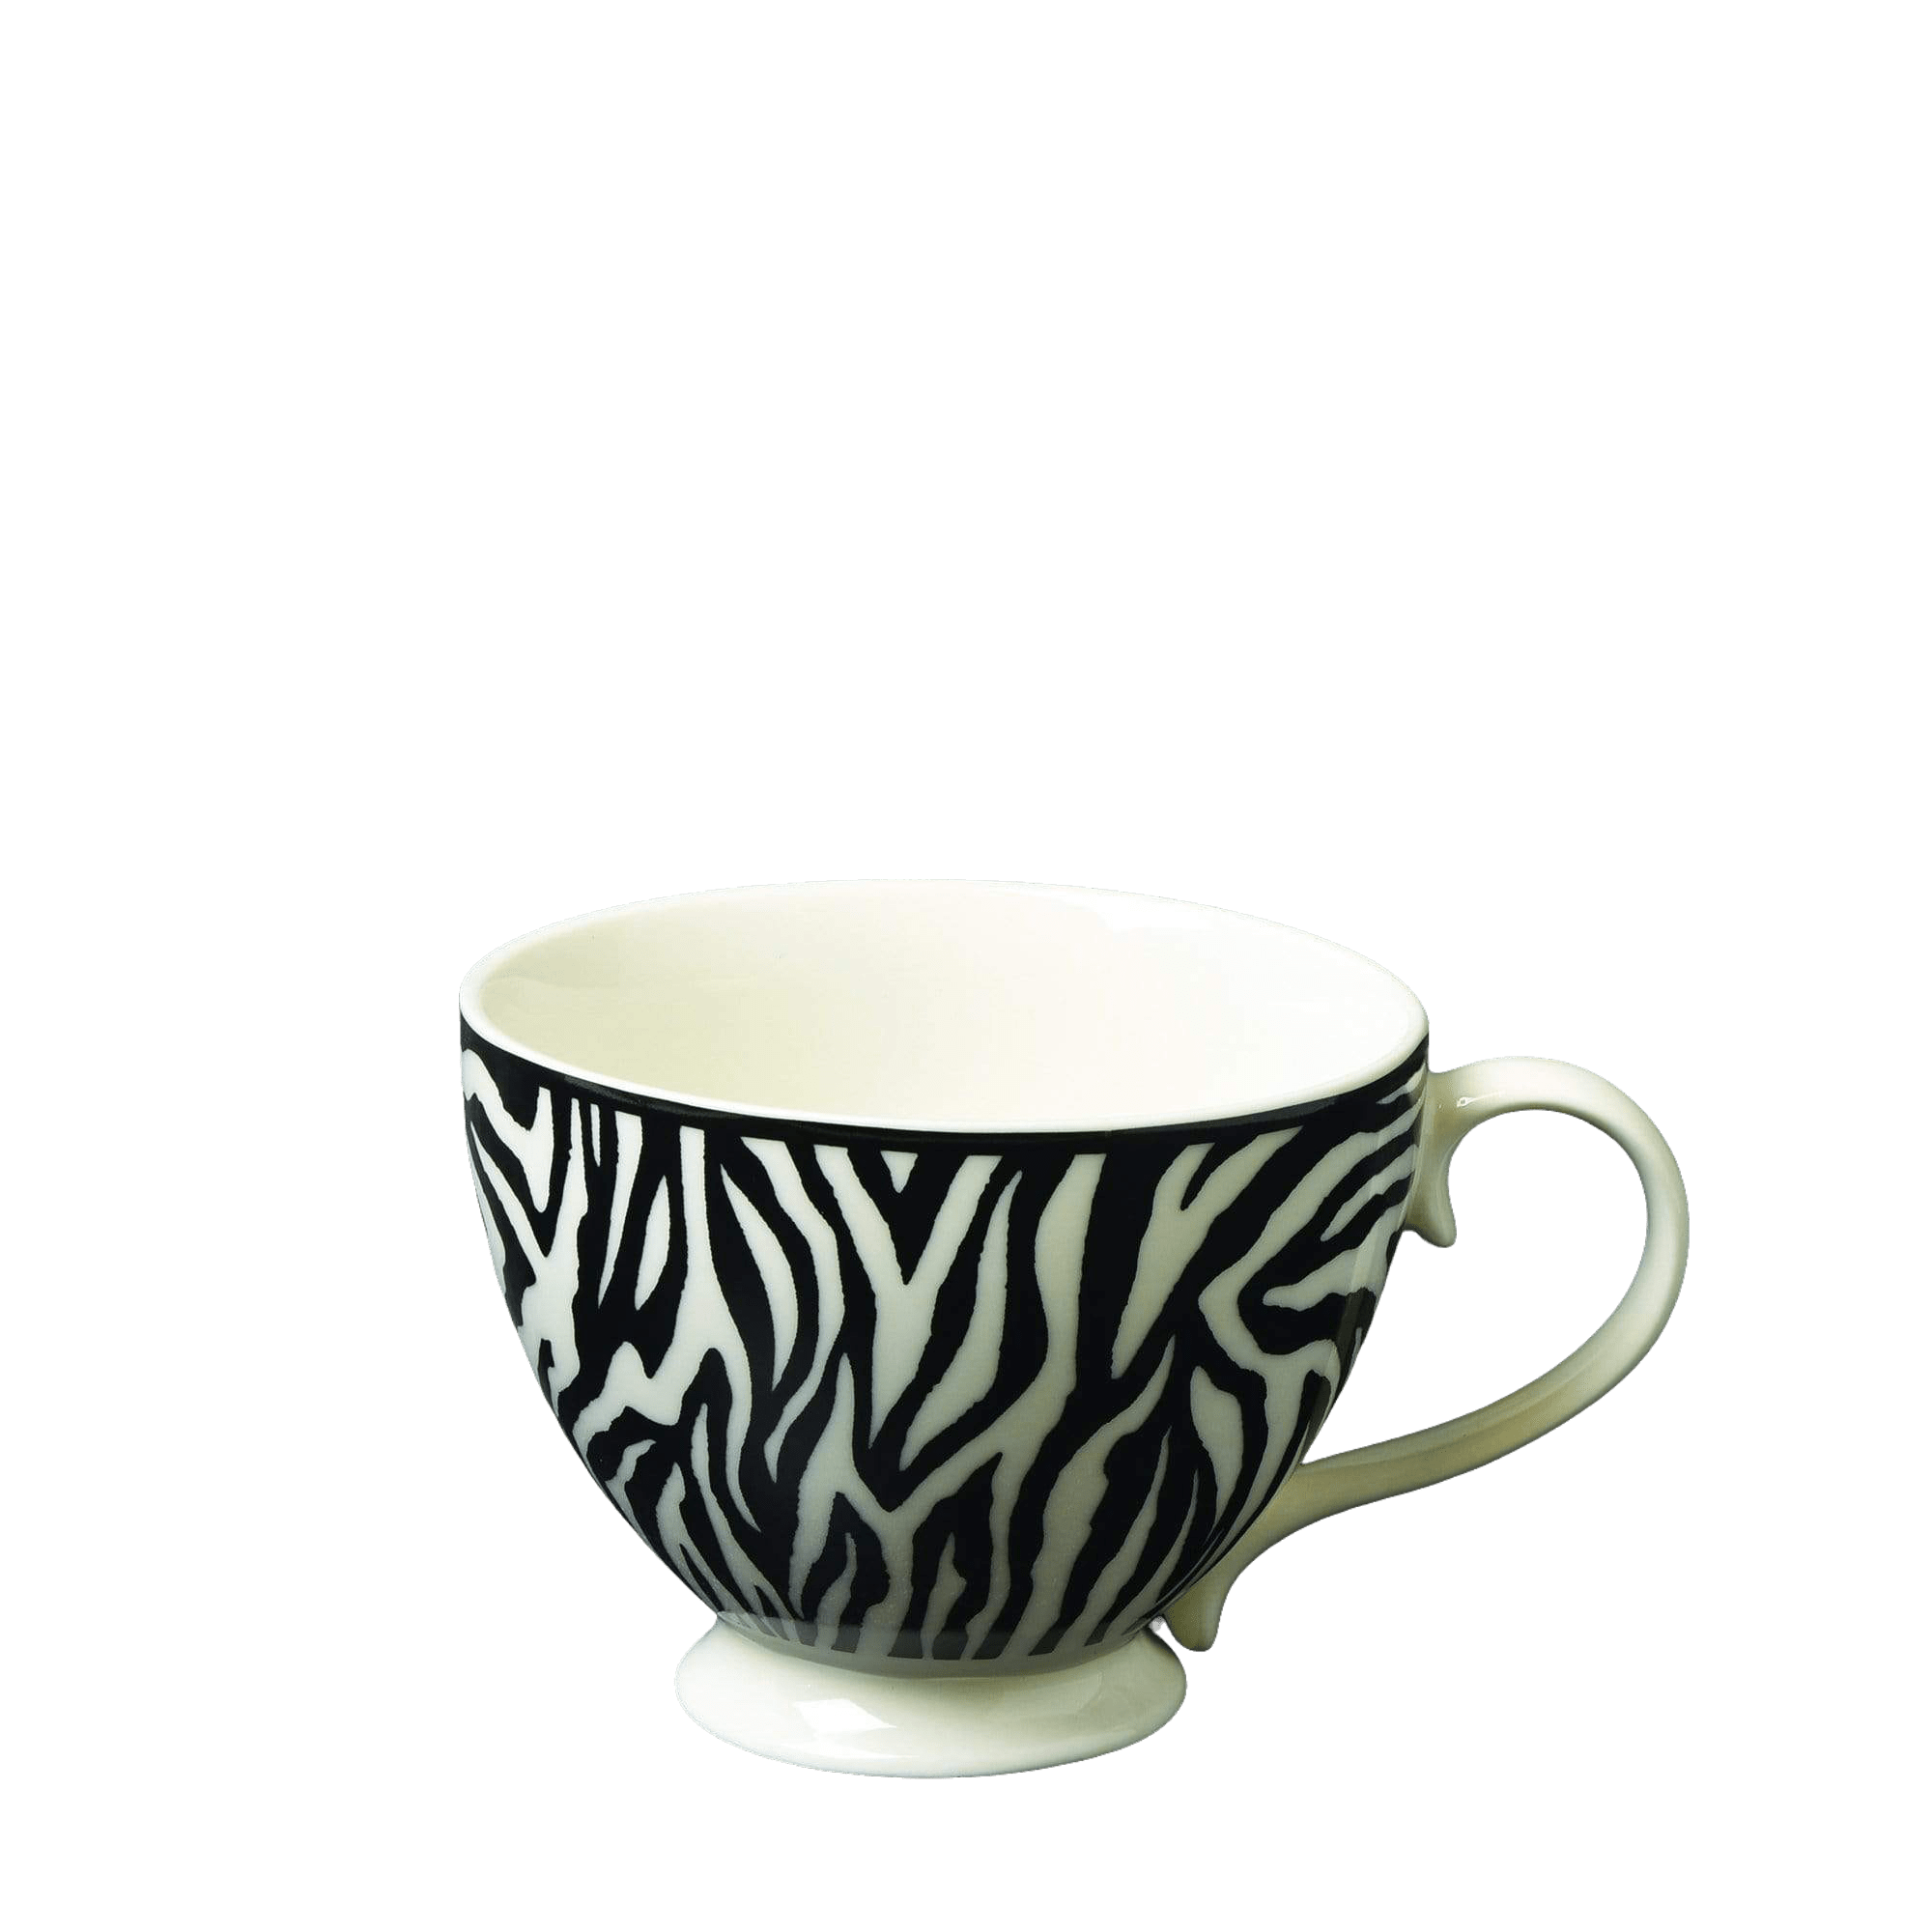 Candlelight Home Mug Animal Luxe Footed Mug Zebra Print Black 6cm 6PK